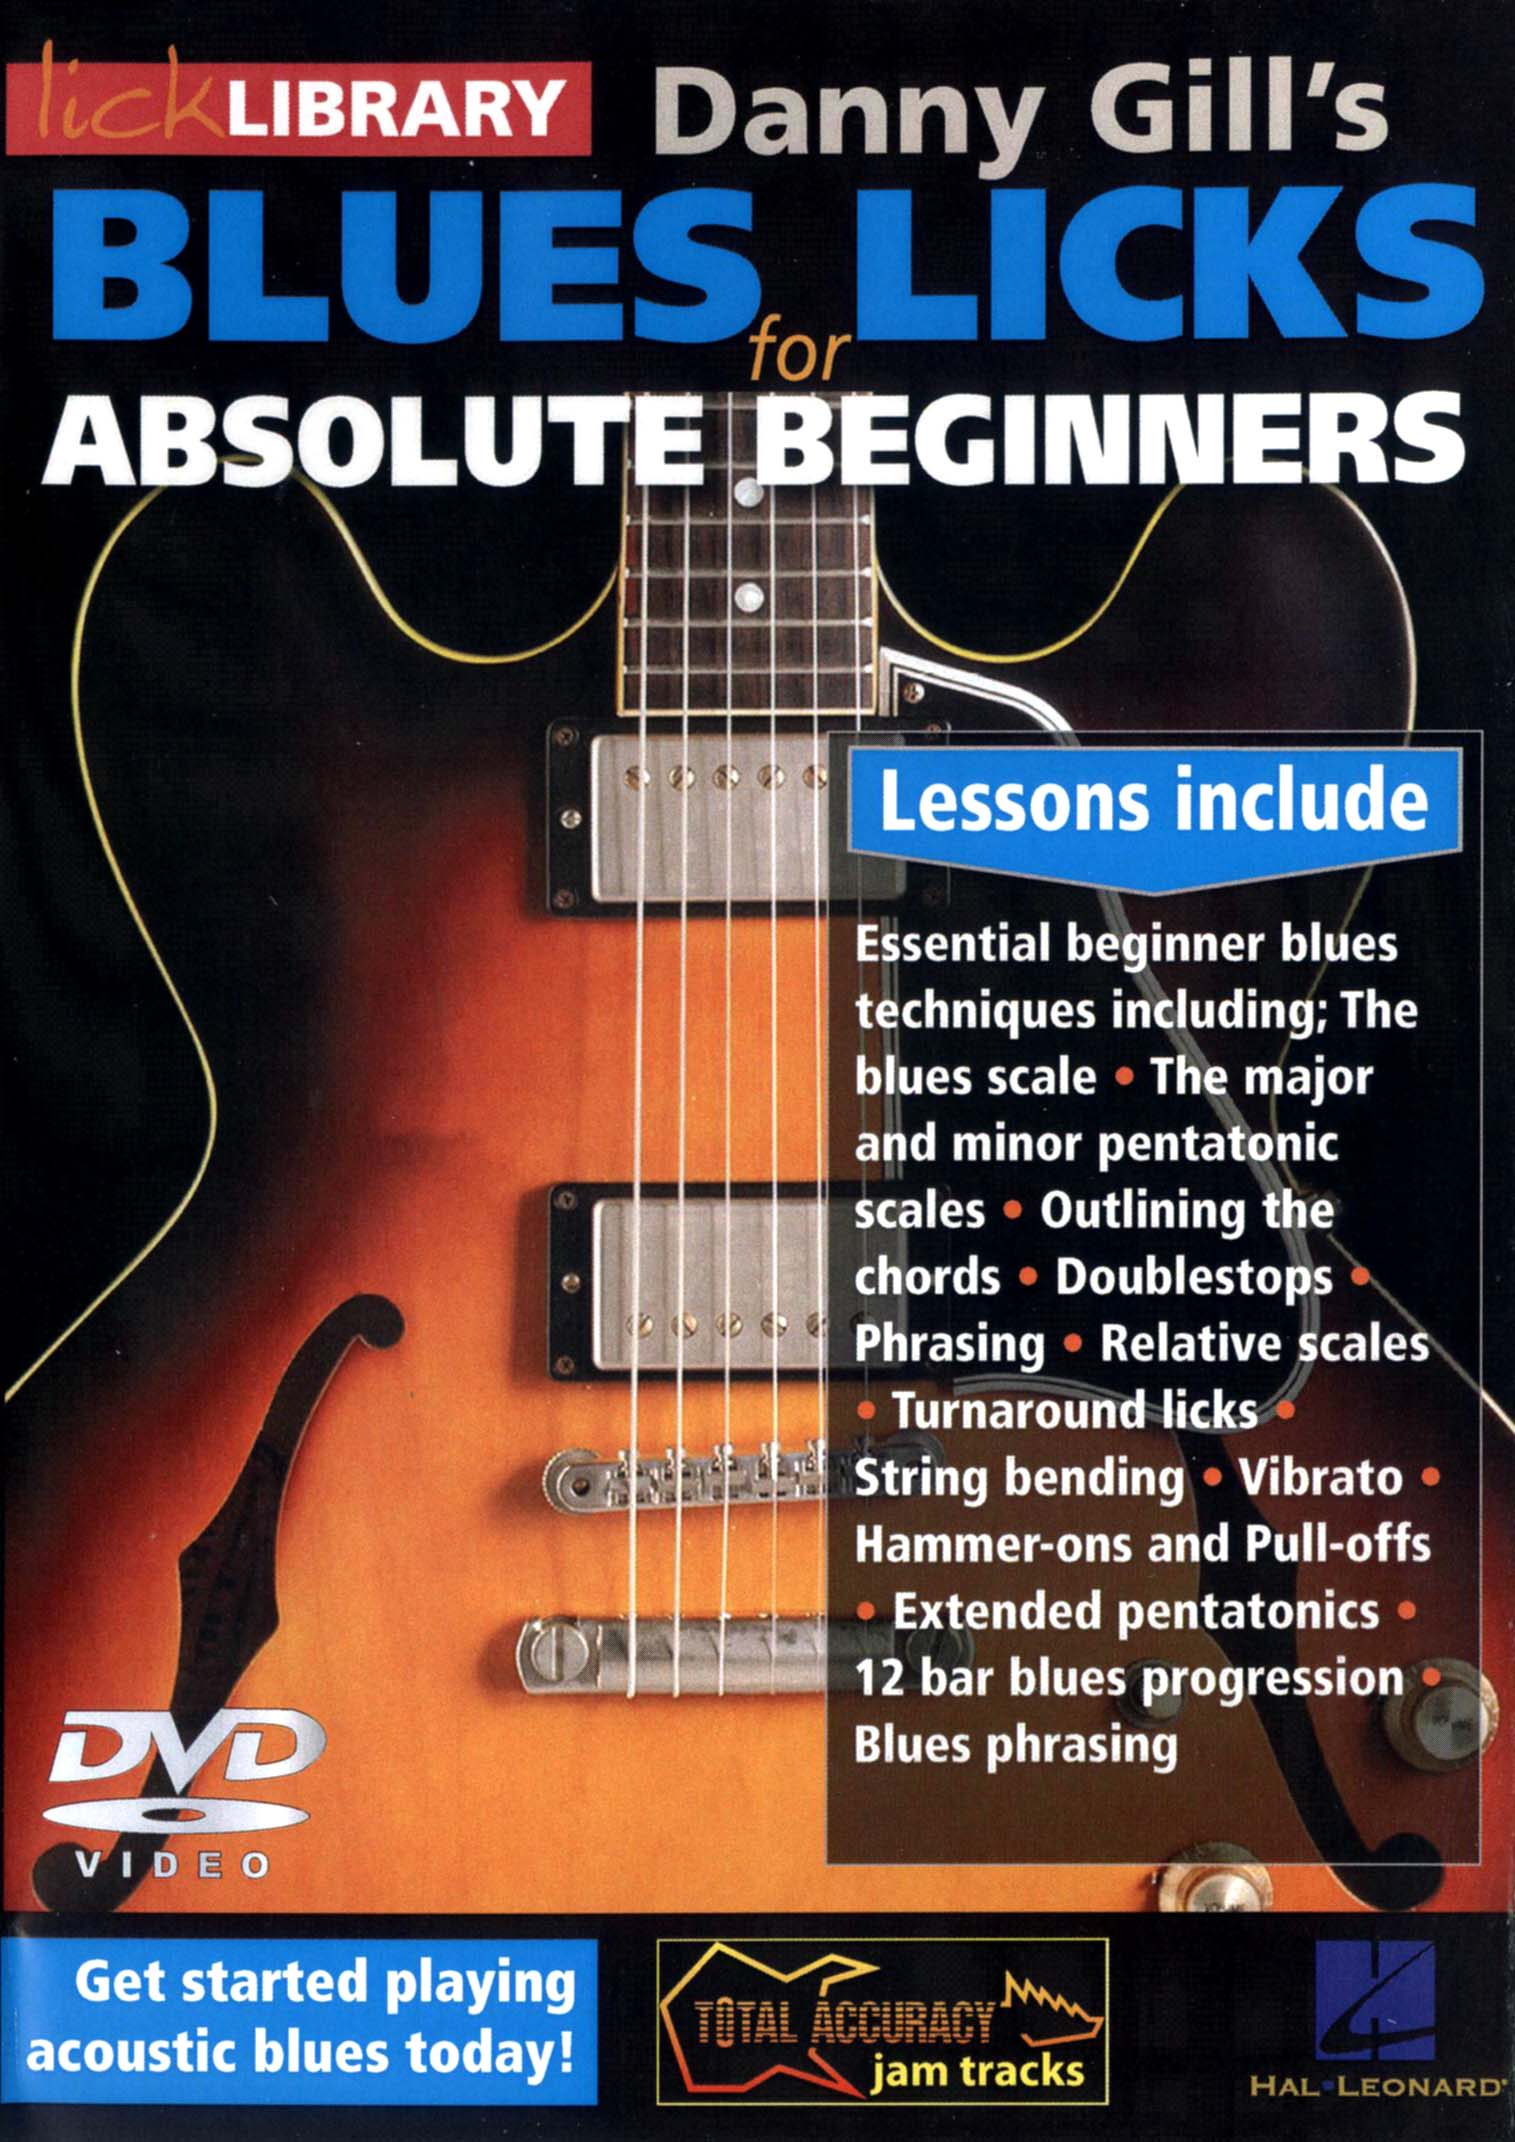 Lick Library: Danny Gill's Blues Licks for Absolute Beginners